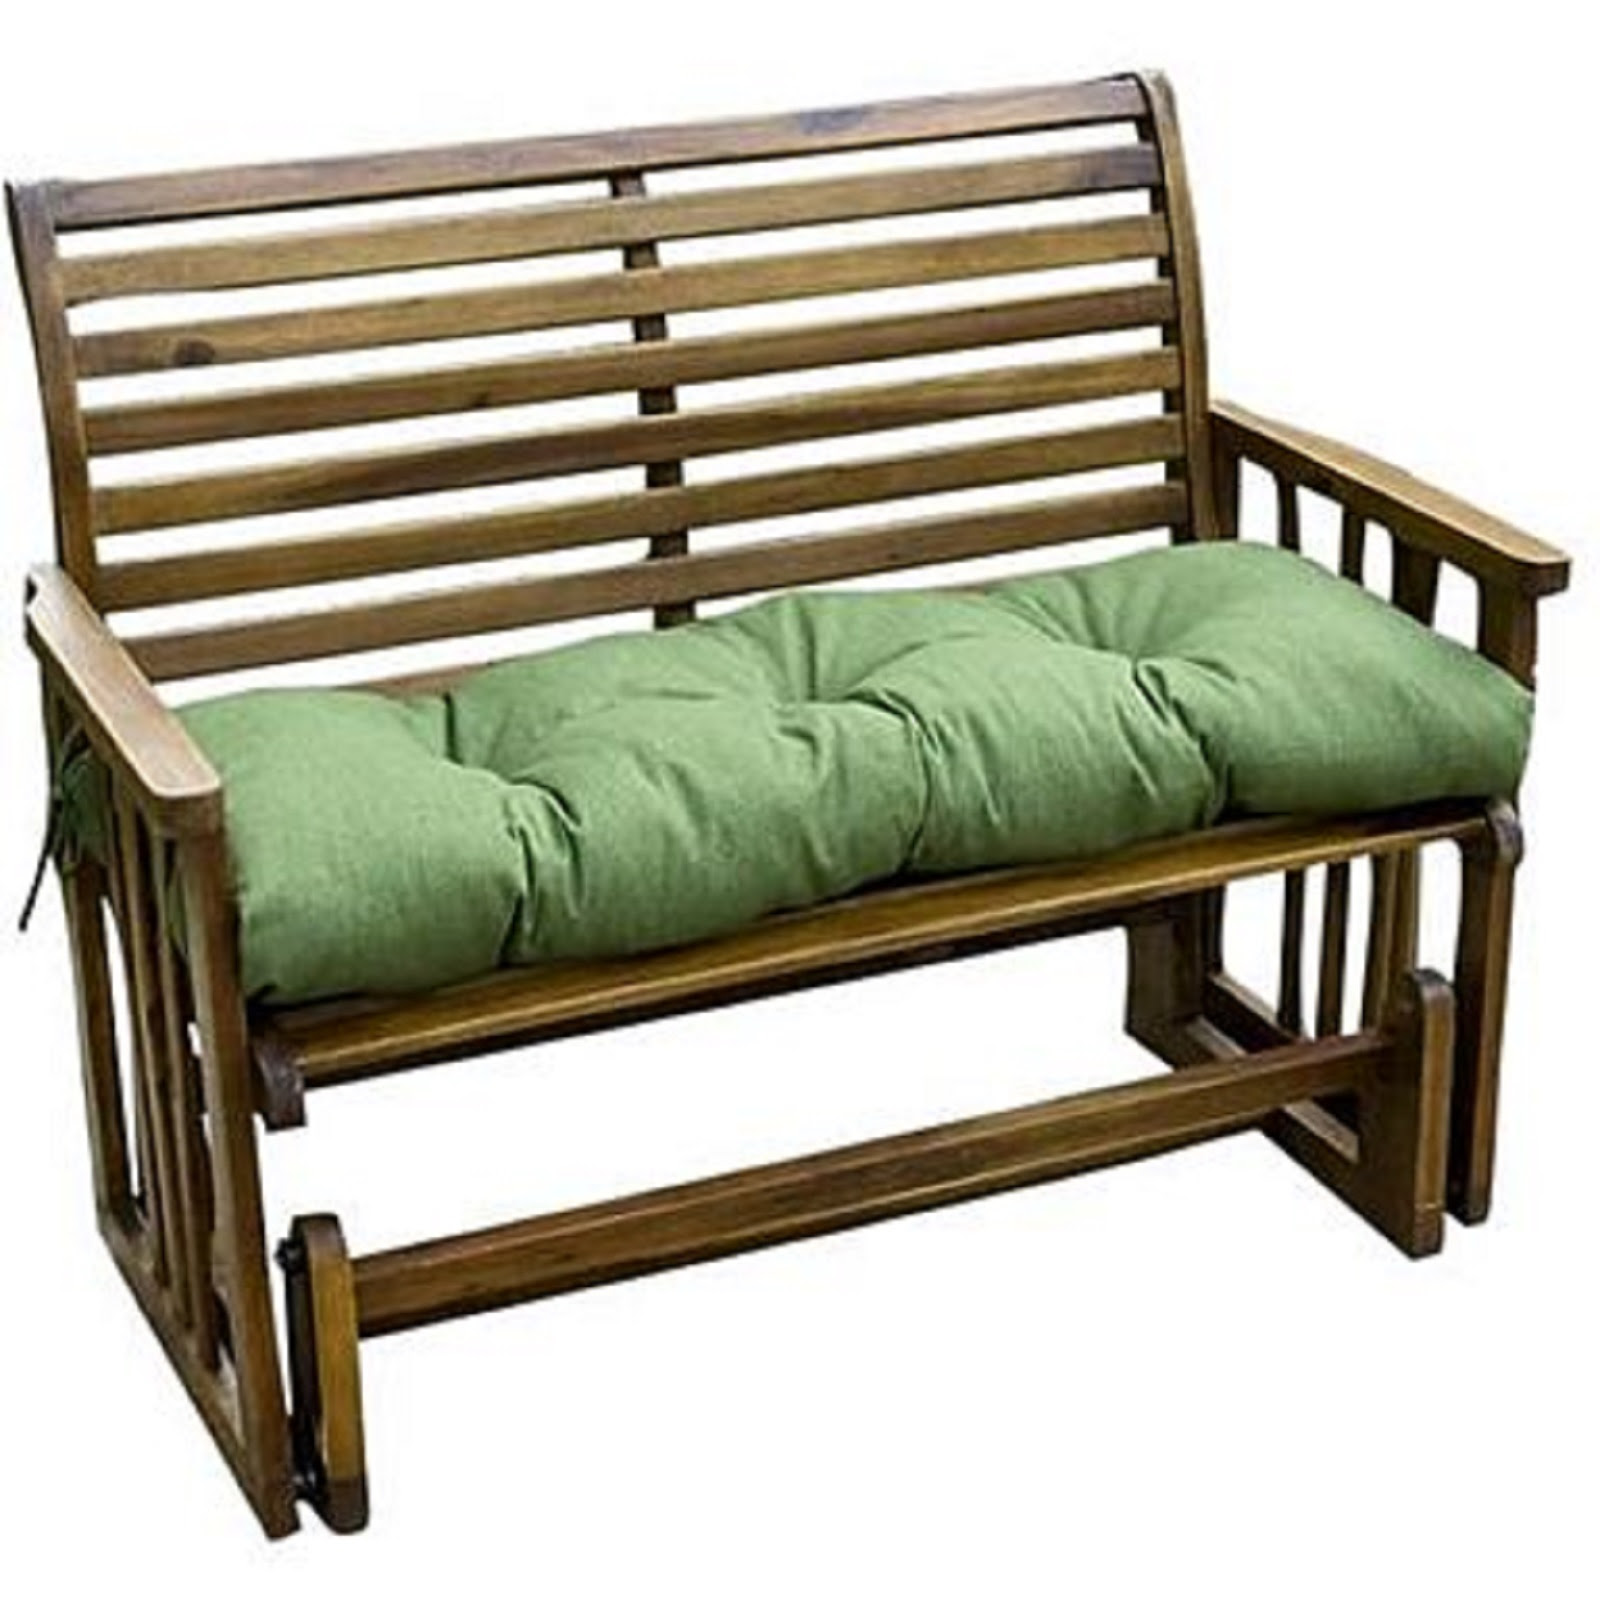 Greendale Home Fashions 44 inch Outdoor Swing/Bench ...